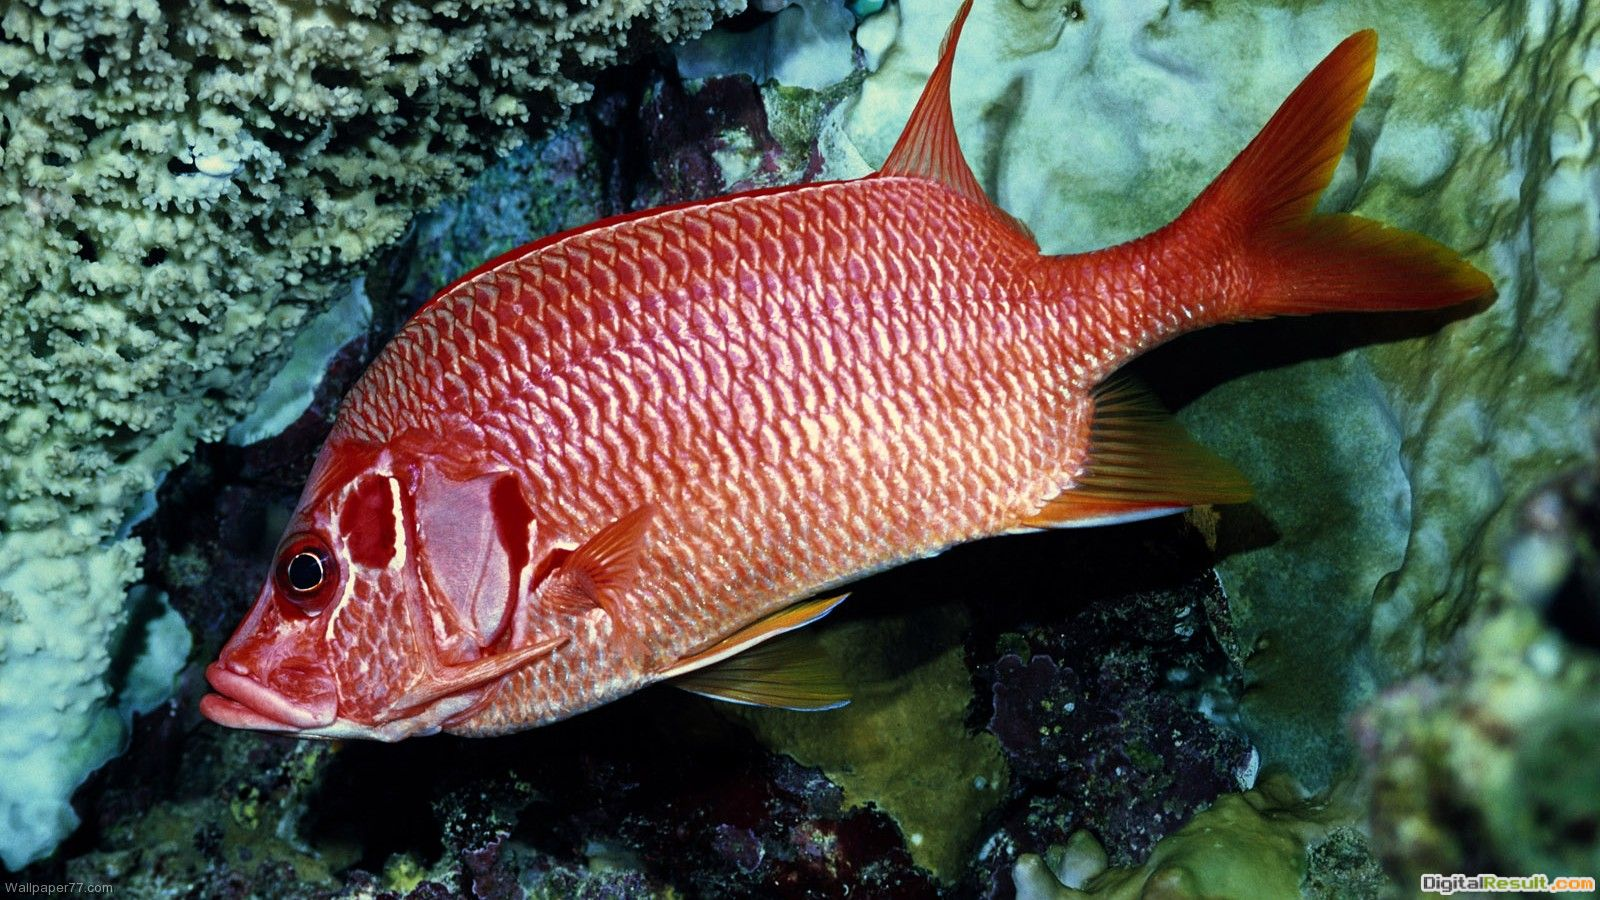 Red Coral Fish, 1600x900 pixels : Wallpapers tagged Fish Wallpapers 442